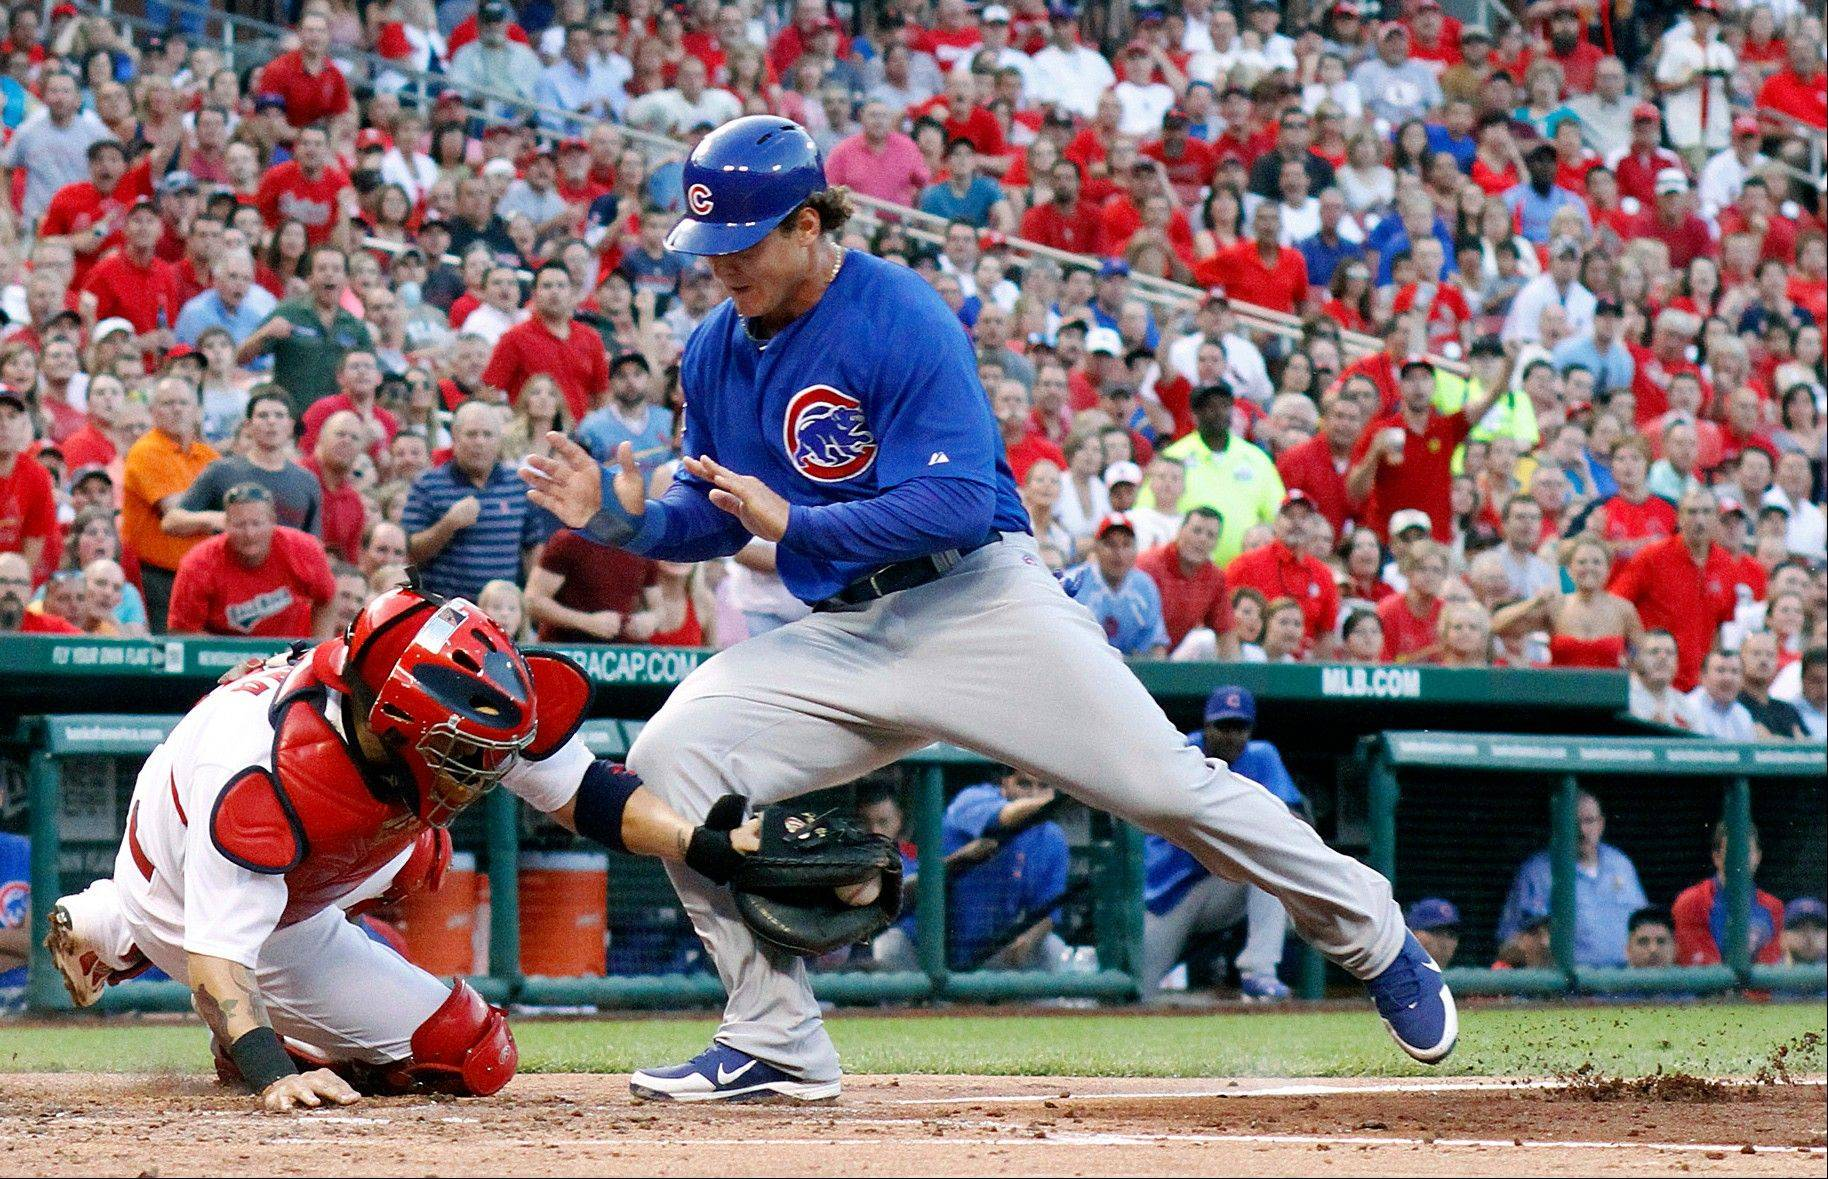 The Cubs' Anthony Rizzo is tagged by Cardinals catcher Yadier Molina — but he manages to knock the ball loose and score during Wednesday's game at Busch Stadium in St. Louis.